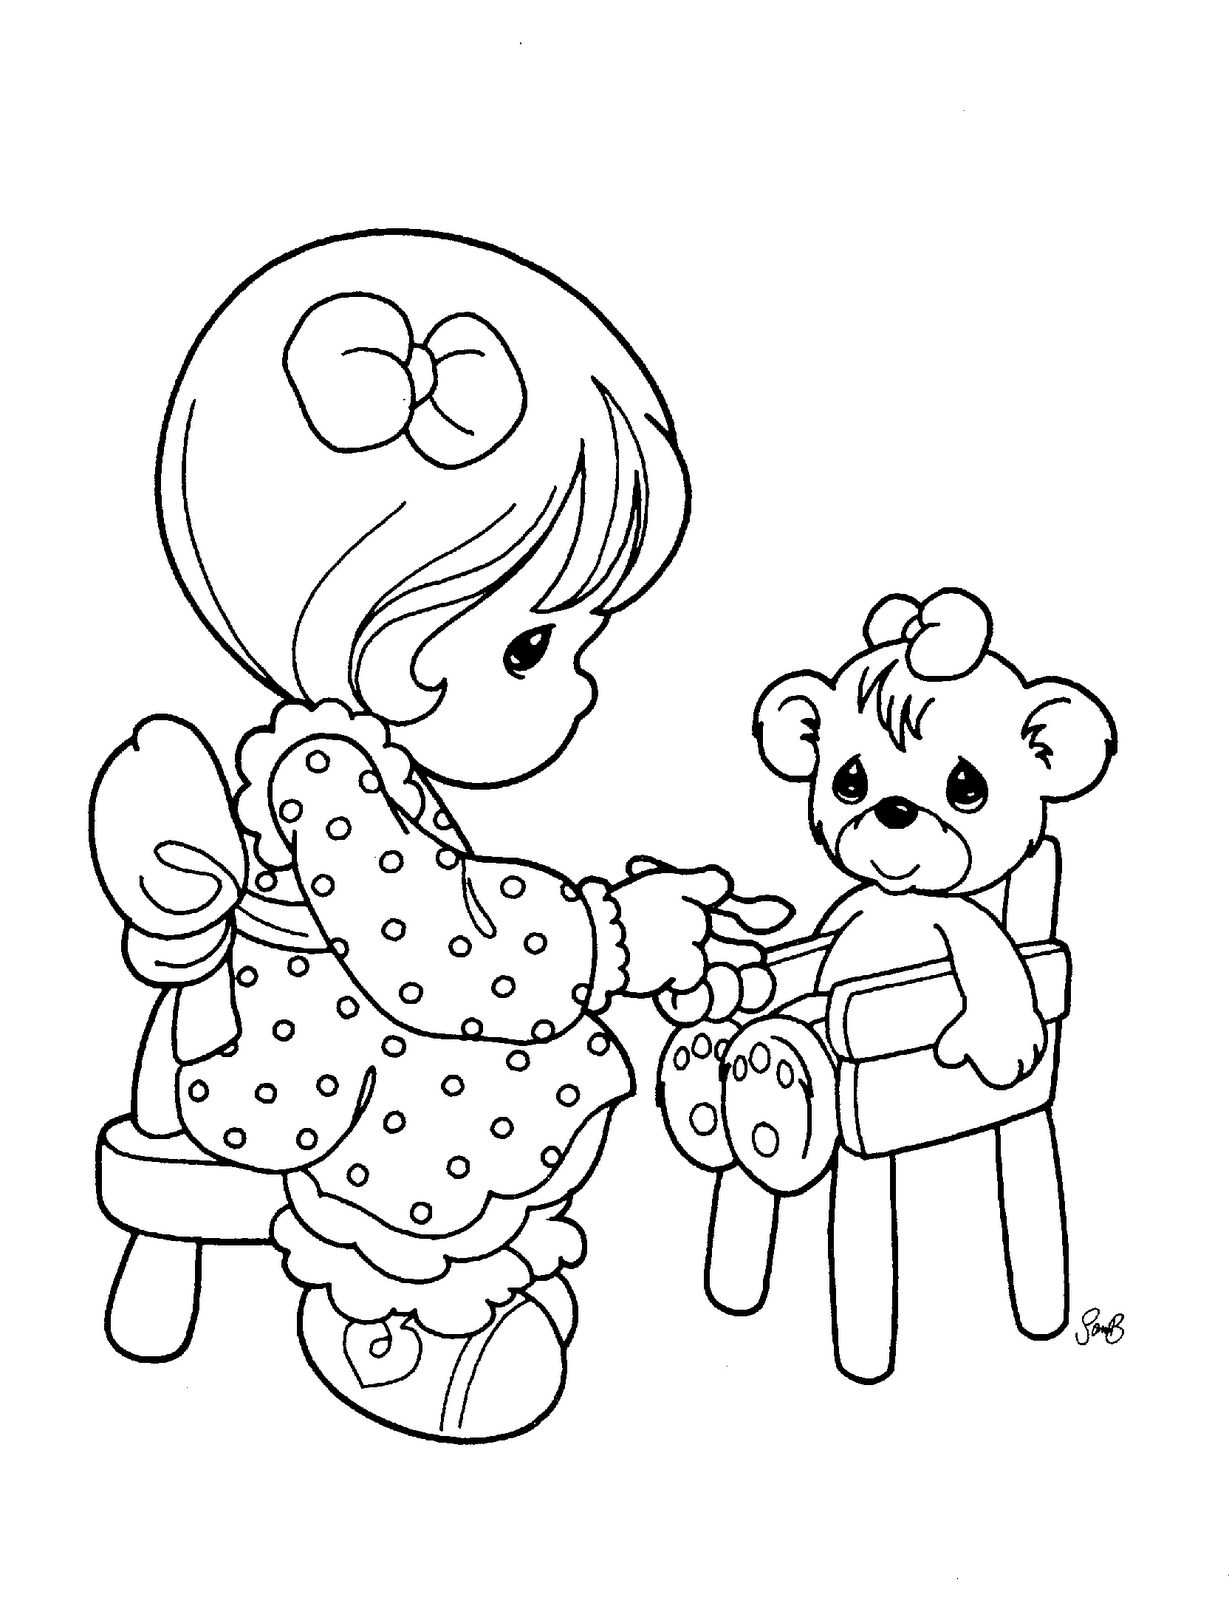 precious moments coloring pages printable precious moments coloring pages online free coloring home coloring printable pages moments precious